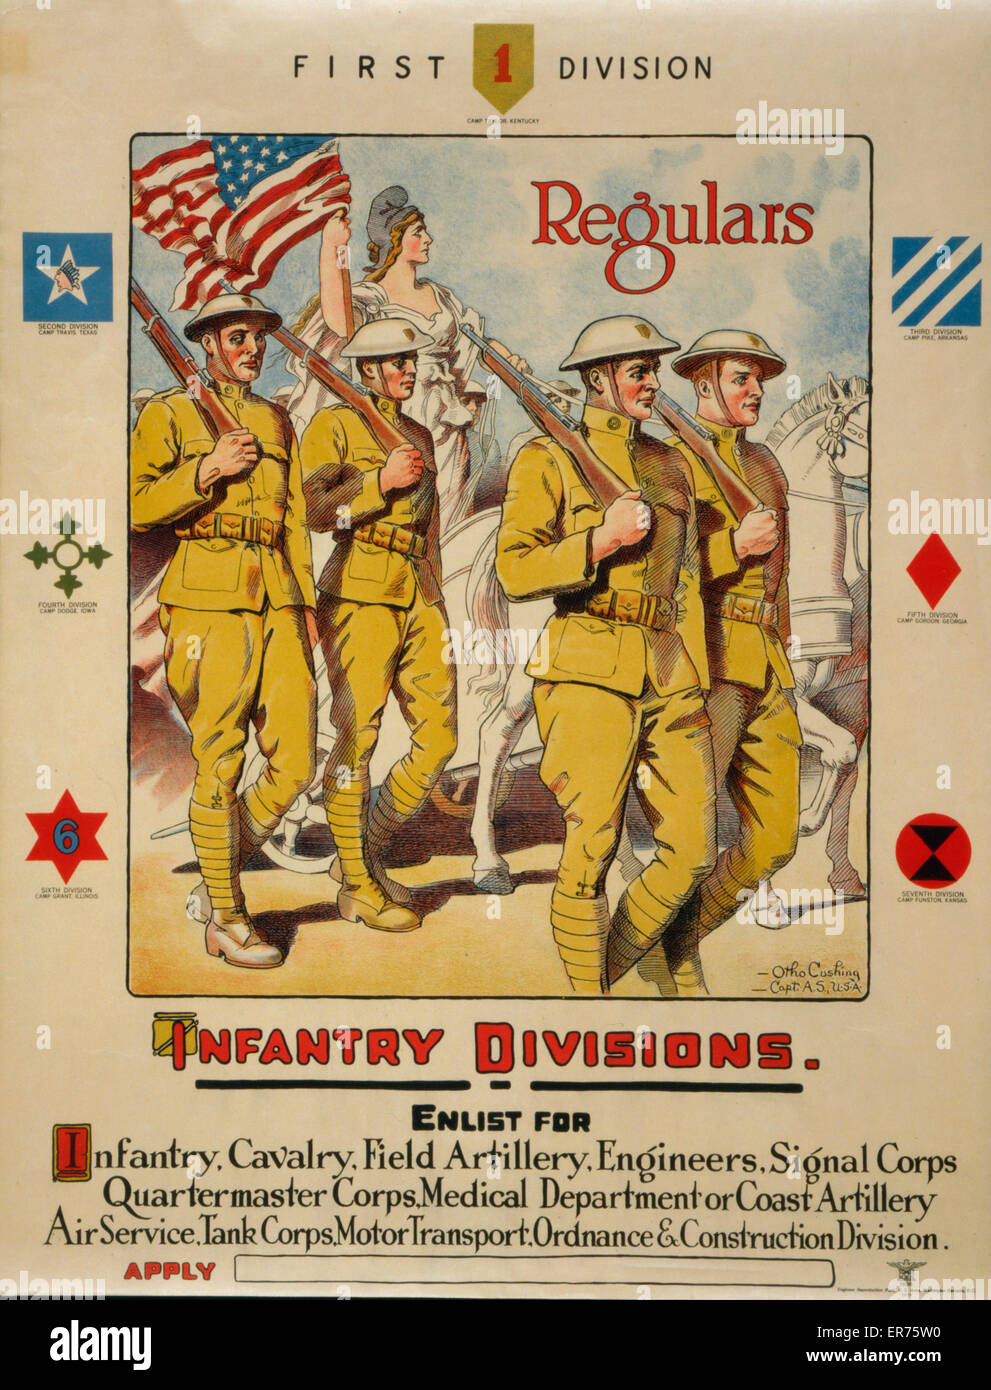 First division, regulars - Infantry divisions - Enlist for infantry, cavalry, field artillery  Poster showing soldiers - Stock Image